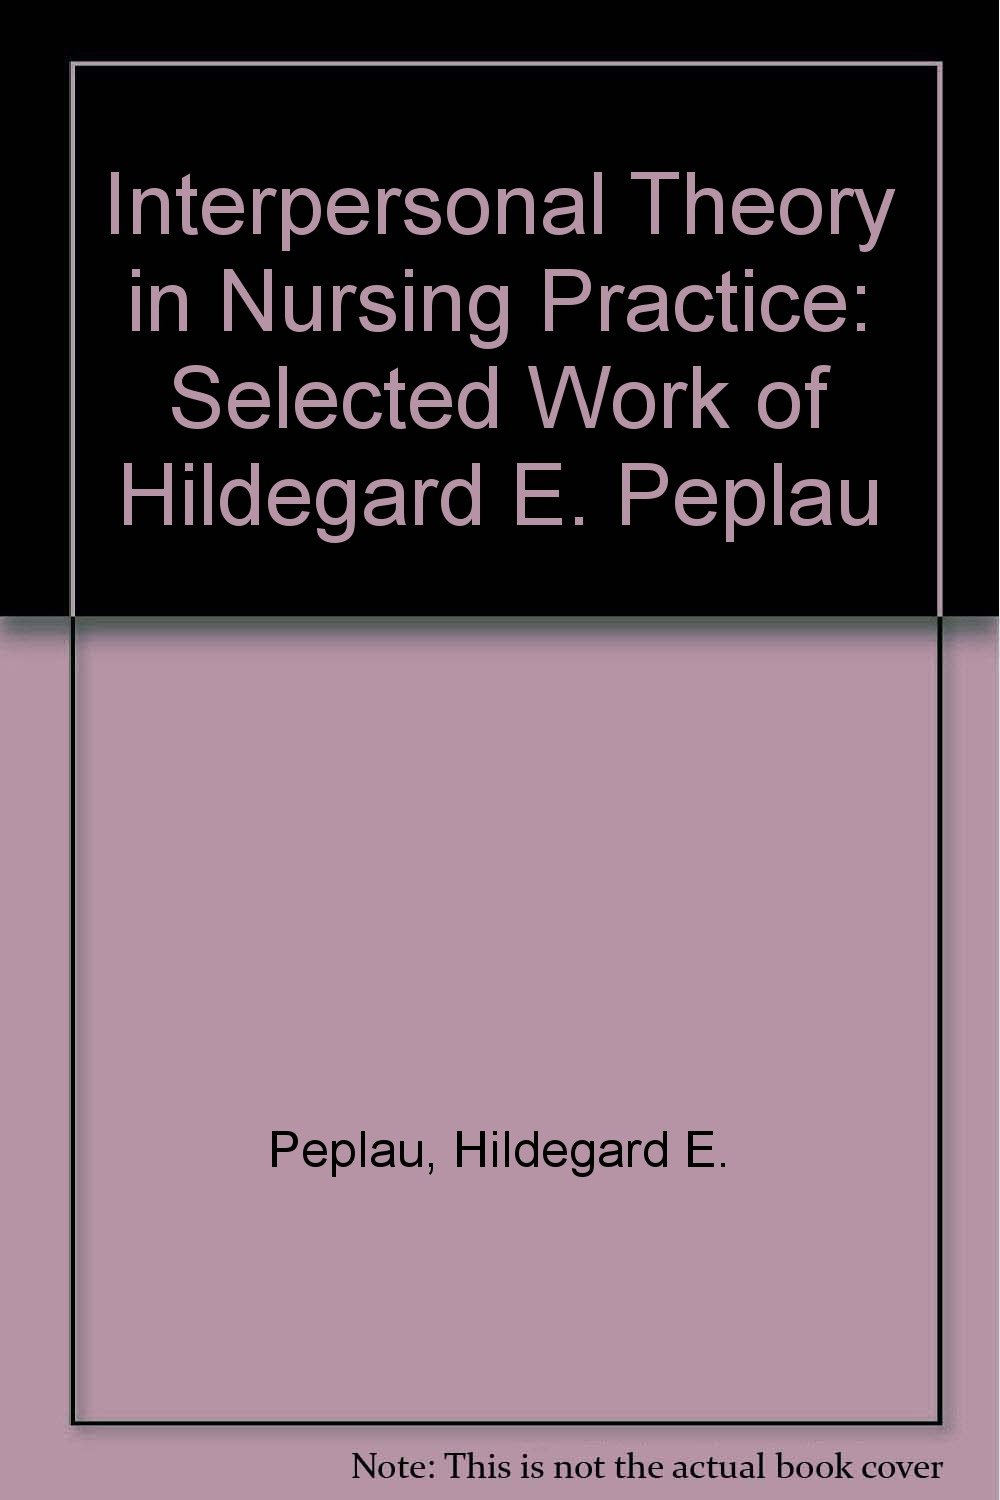 nursing paper on peplaus theory of interpersonal Peplau's interpersonal relationship theory nurse-client relationship the foundation of nursing process inter-personal model – a partnership between client and nurse instead of the clients just receiving treatment and the nurse simply just giving the treatment as the dr orders shared.